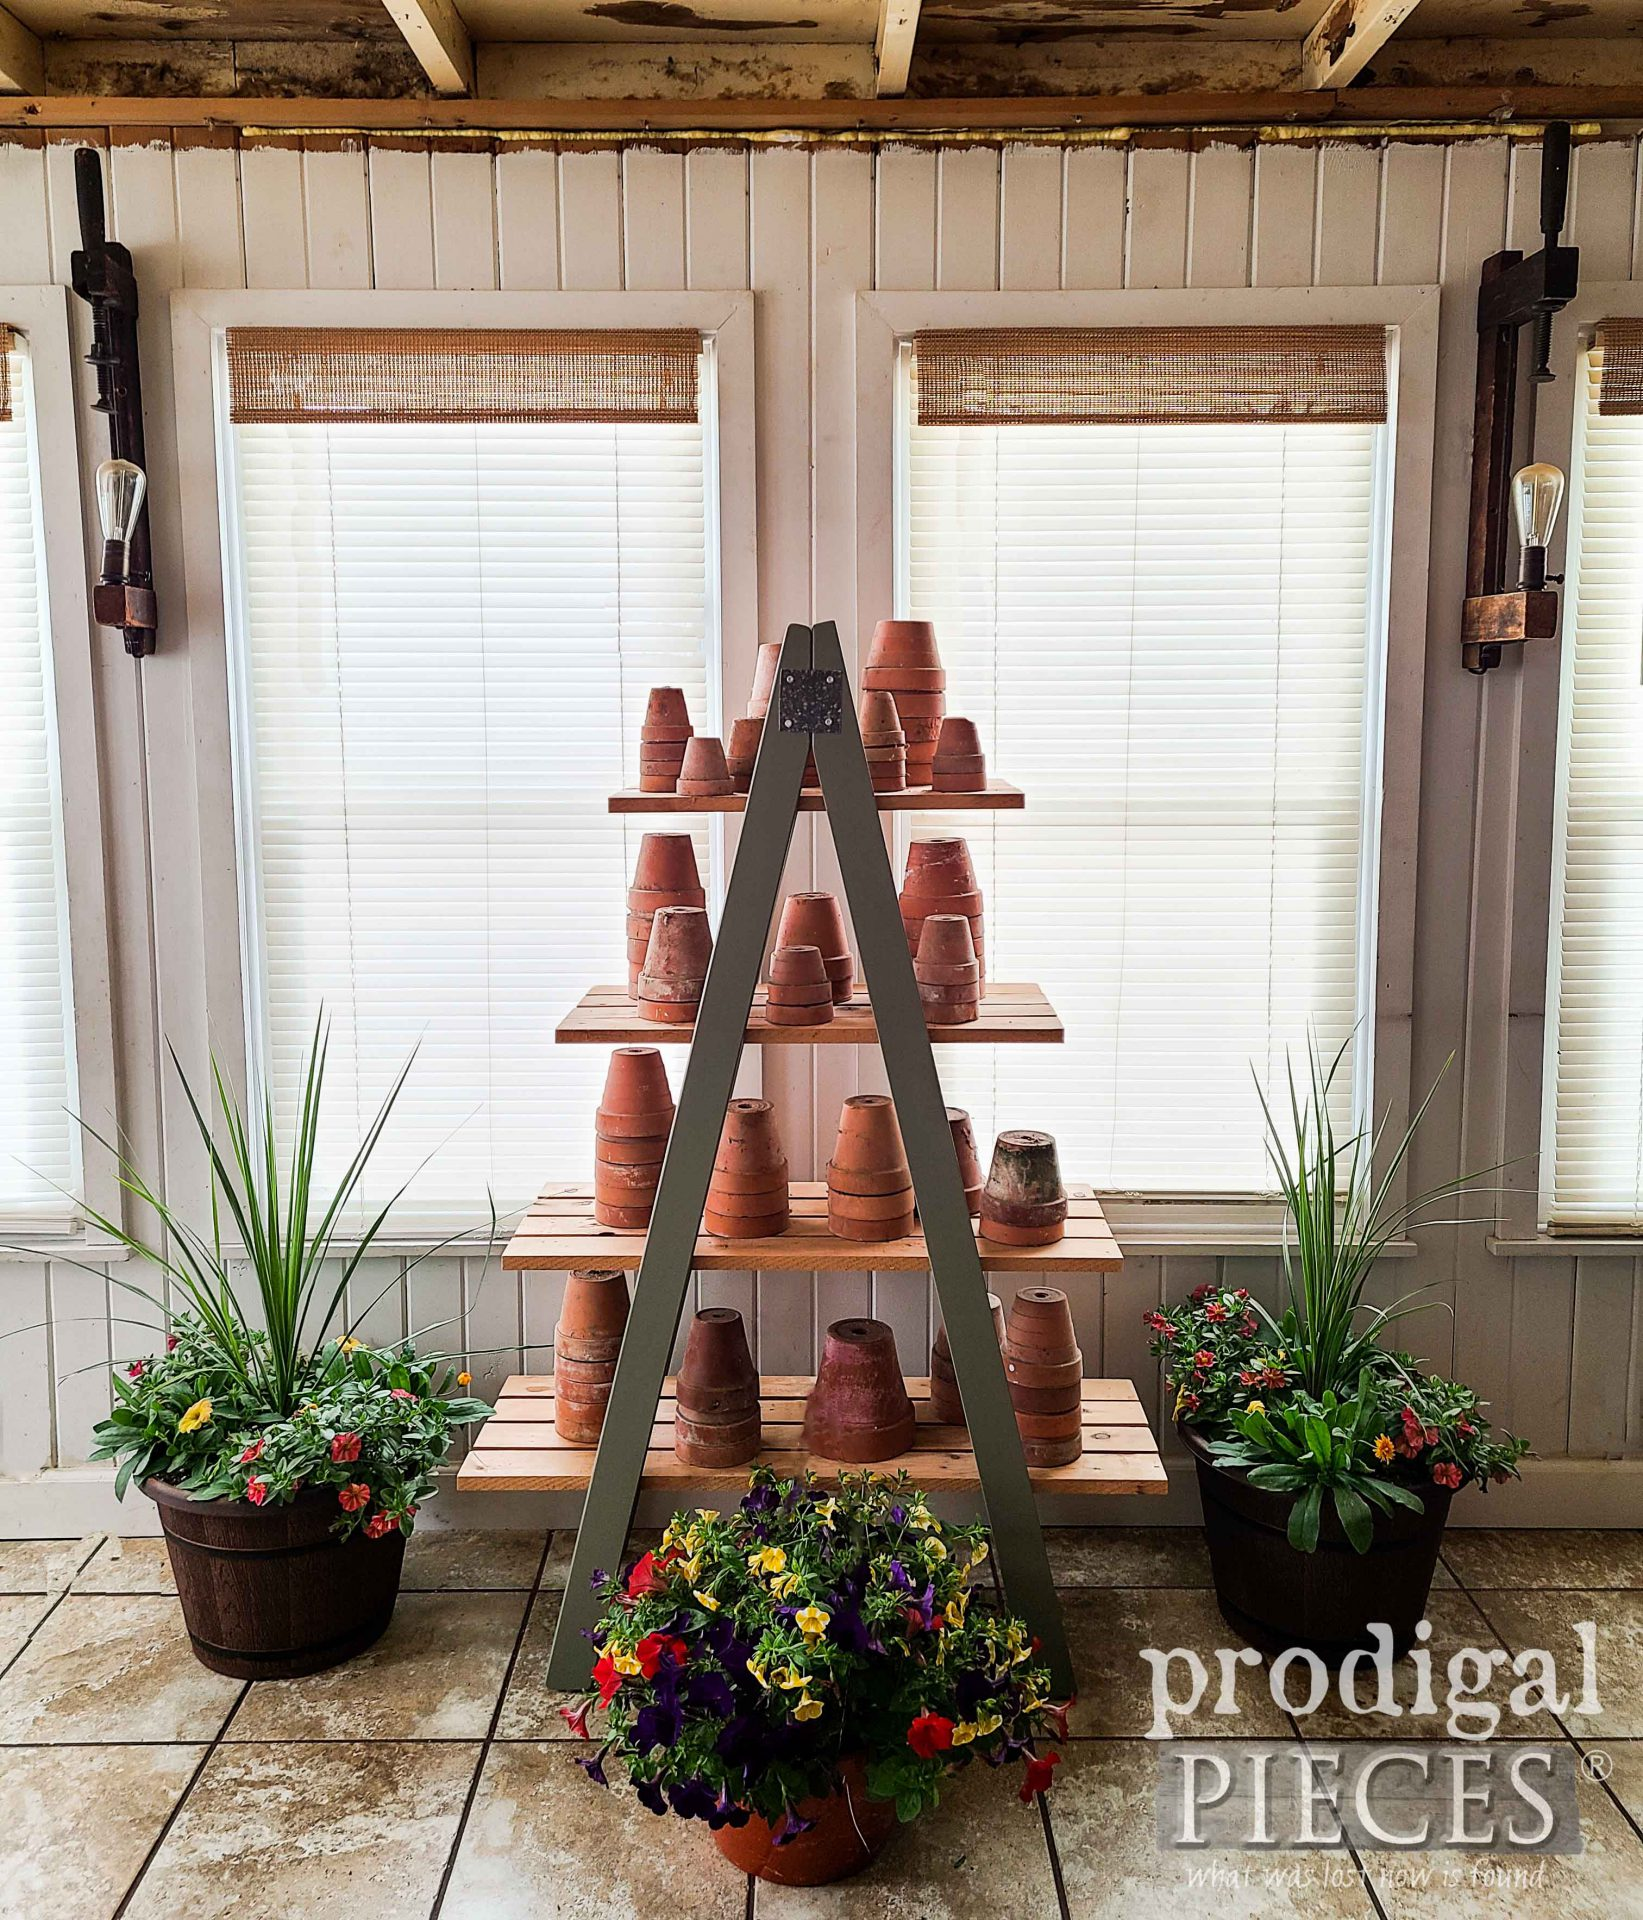 DIY Tiered Ladder Shelf from Upcycled Bunk Bed Ladders by Prodigal Pieces | prodigalpieces.com #prodigalpieces #diy #farmhouse #upcycled #home #homedecor #garden #spring